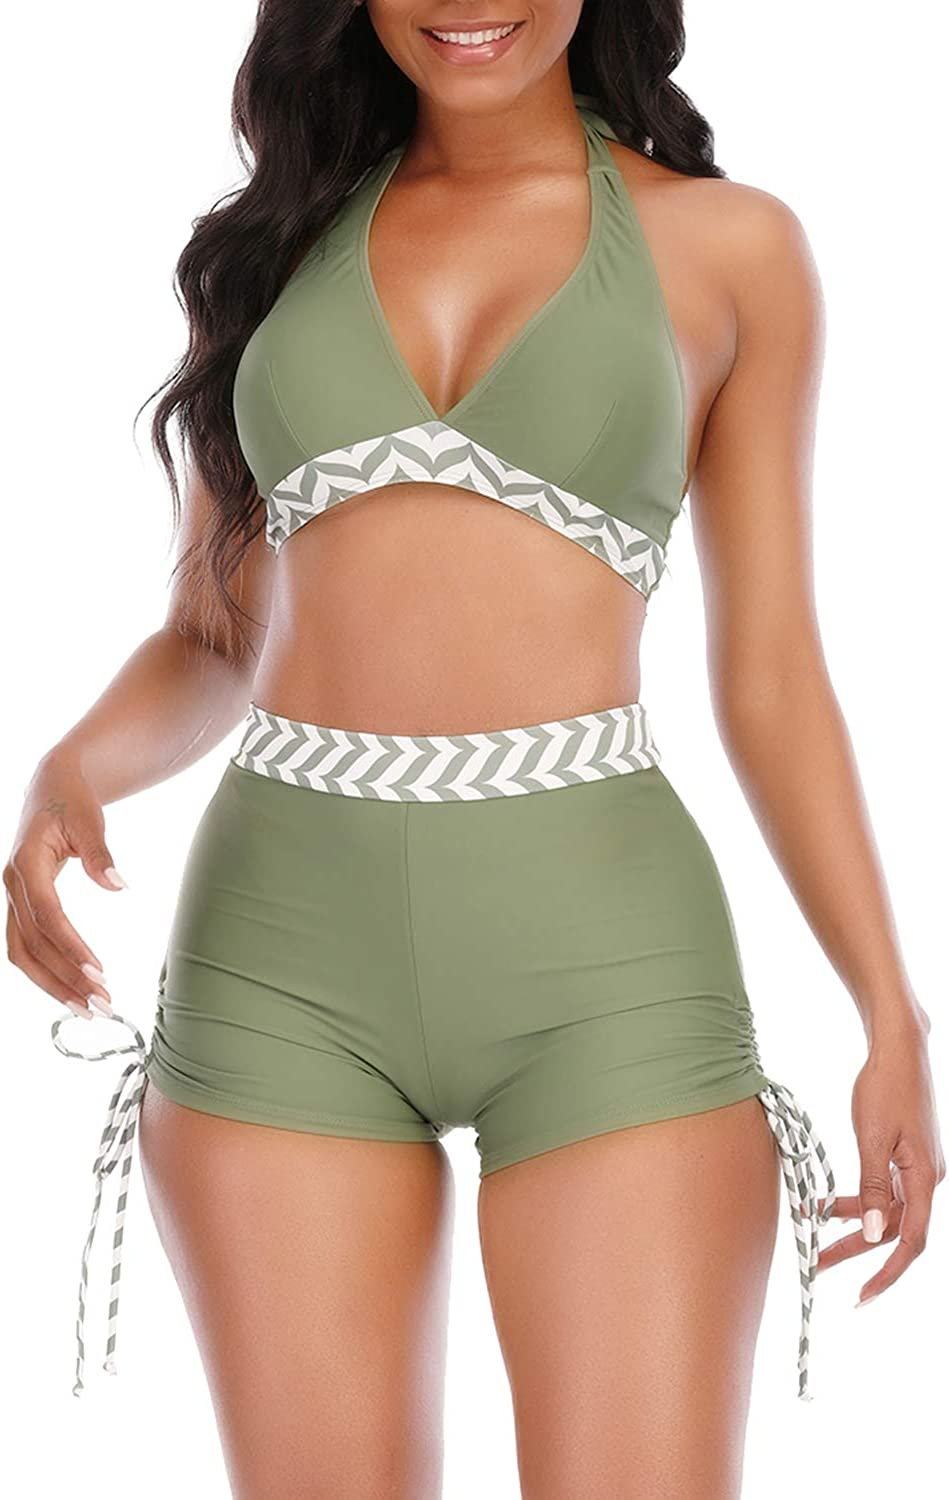 Womens High Waisted Swimsuits with Boy Shorts Brazilian Triangle Top Stripes Halter Bikini Two Piece Bathing Suits